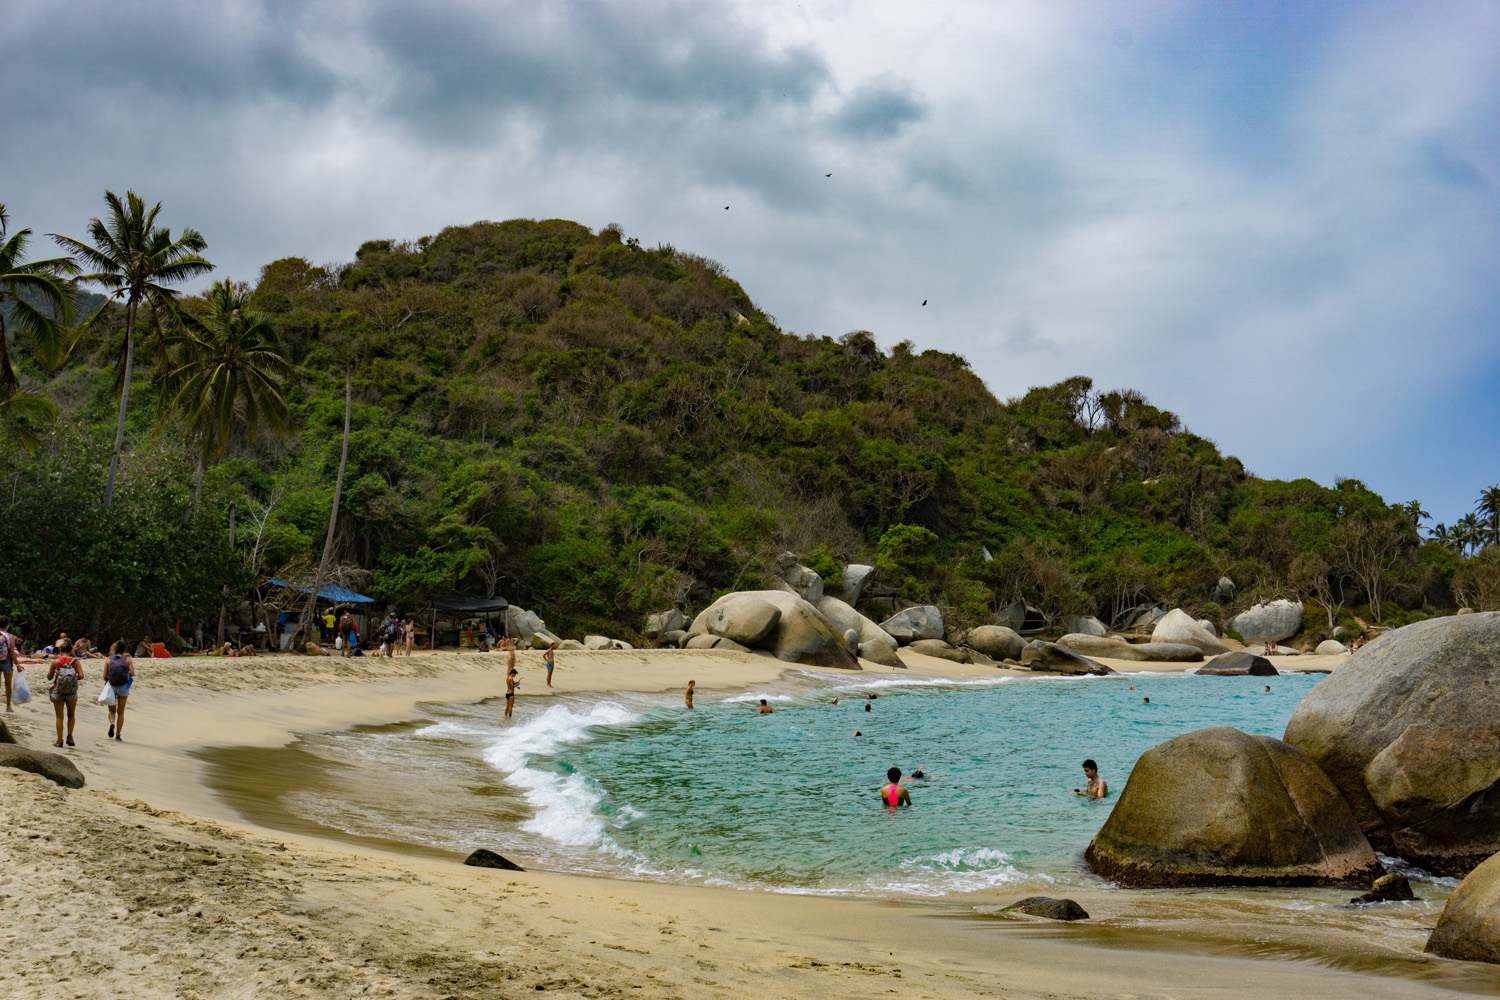 La Piscina (The Pool) – Tayrona National Park.